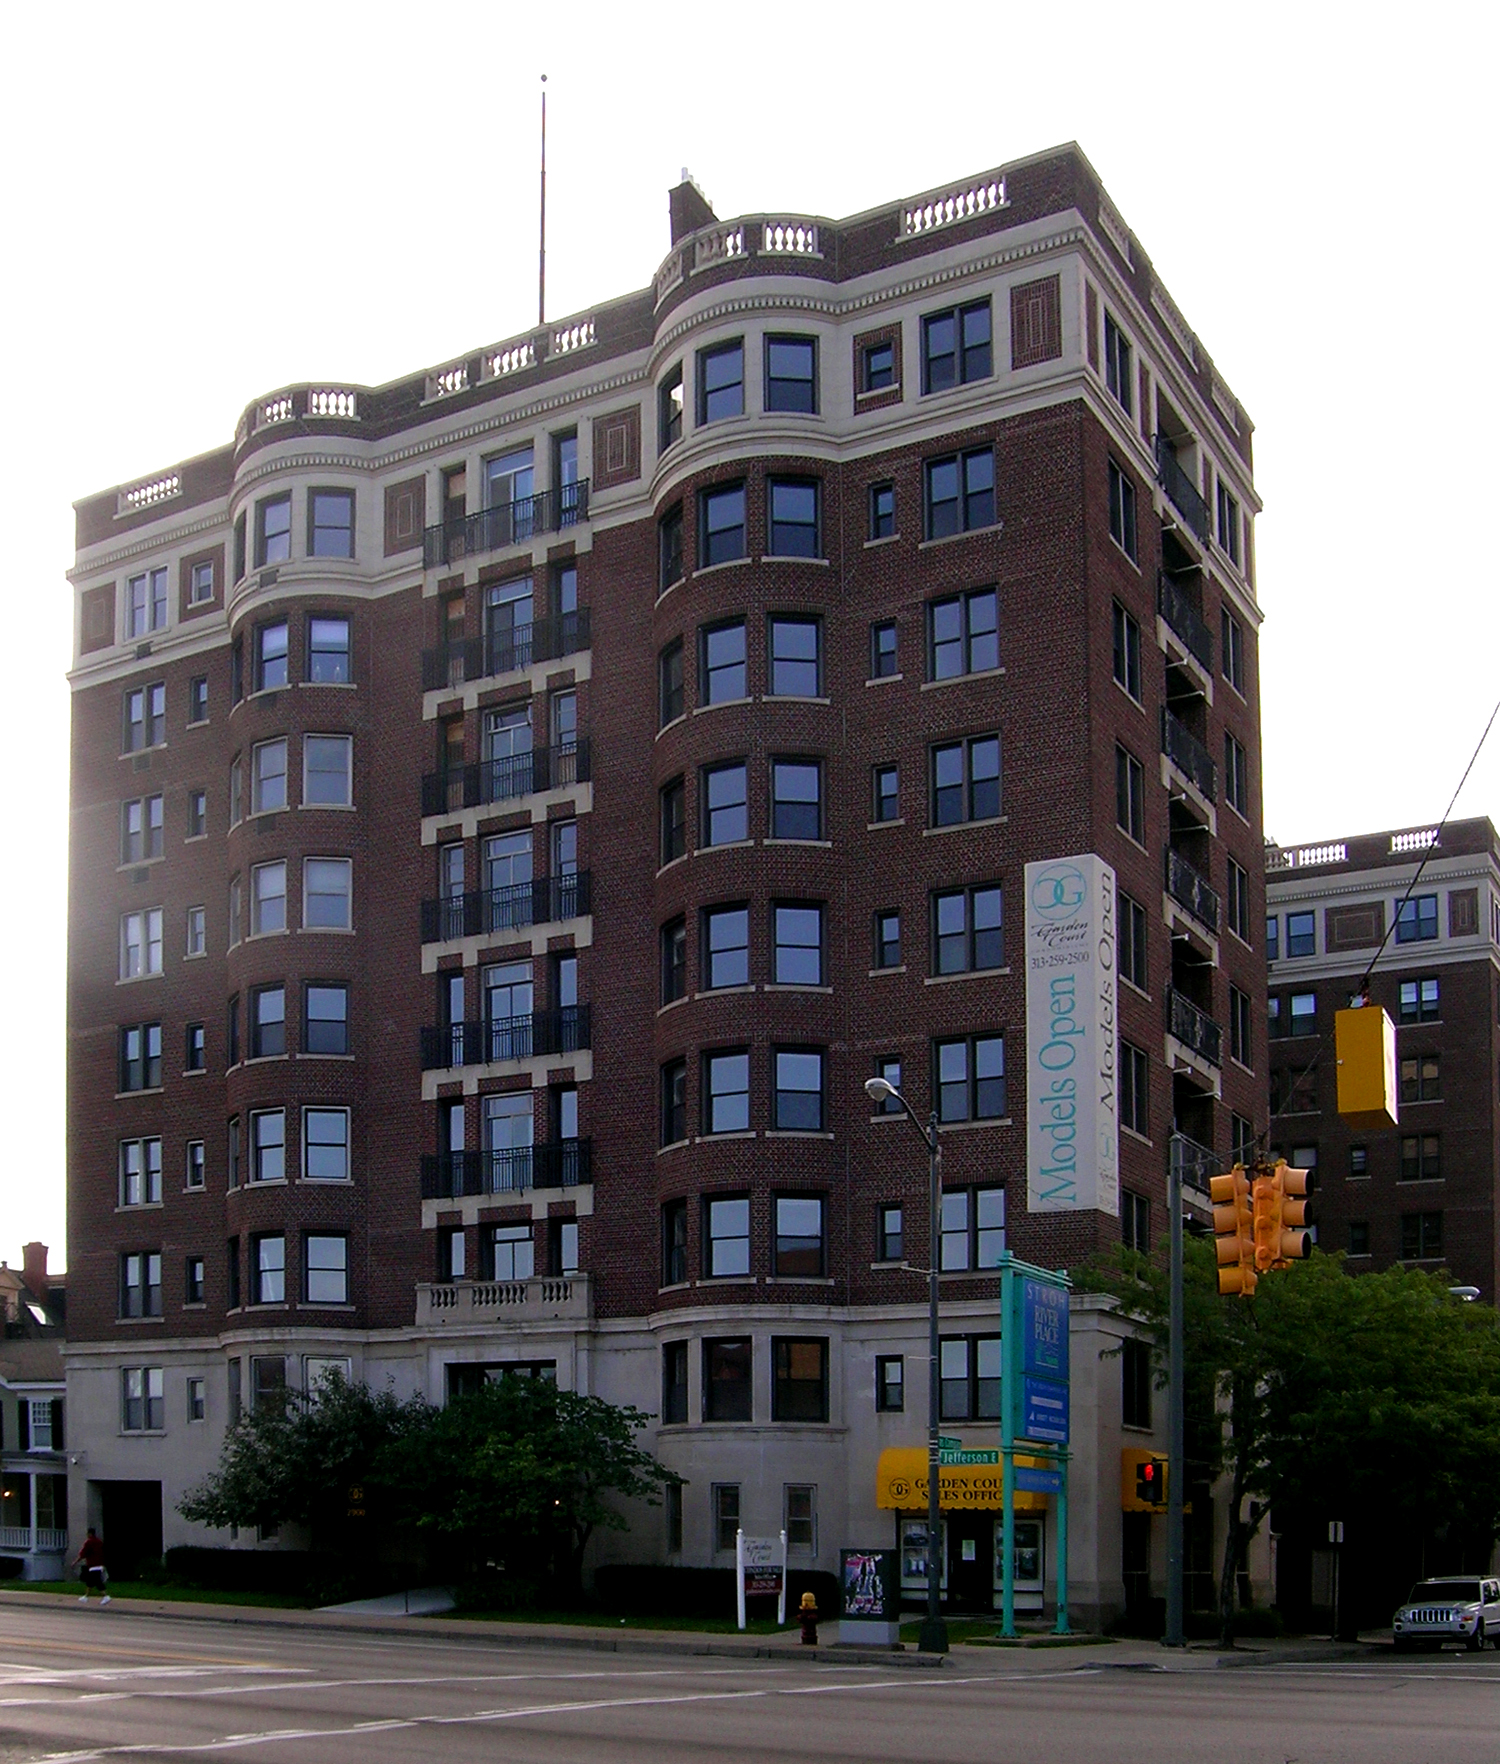 Apartments By Location: Garden Court Apartments (Detroit, Michigan)